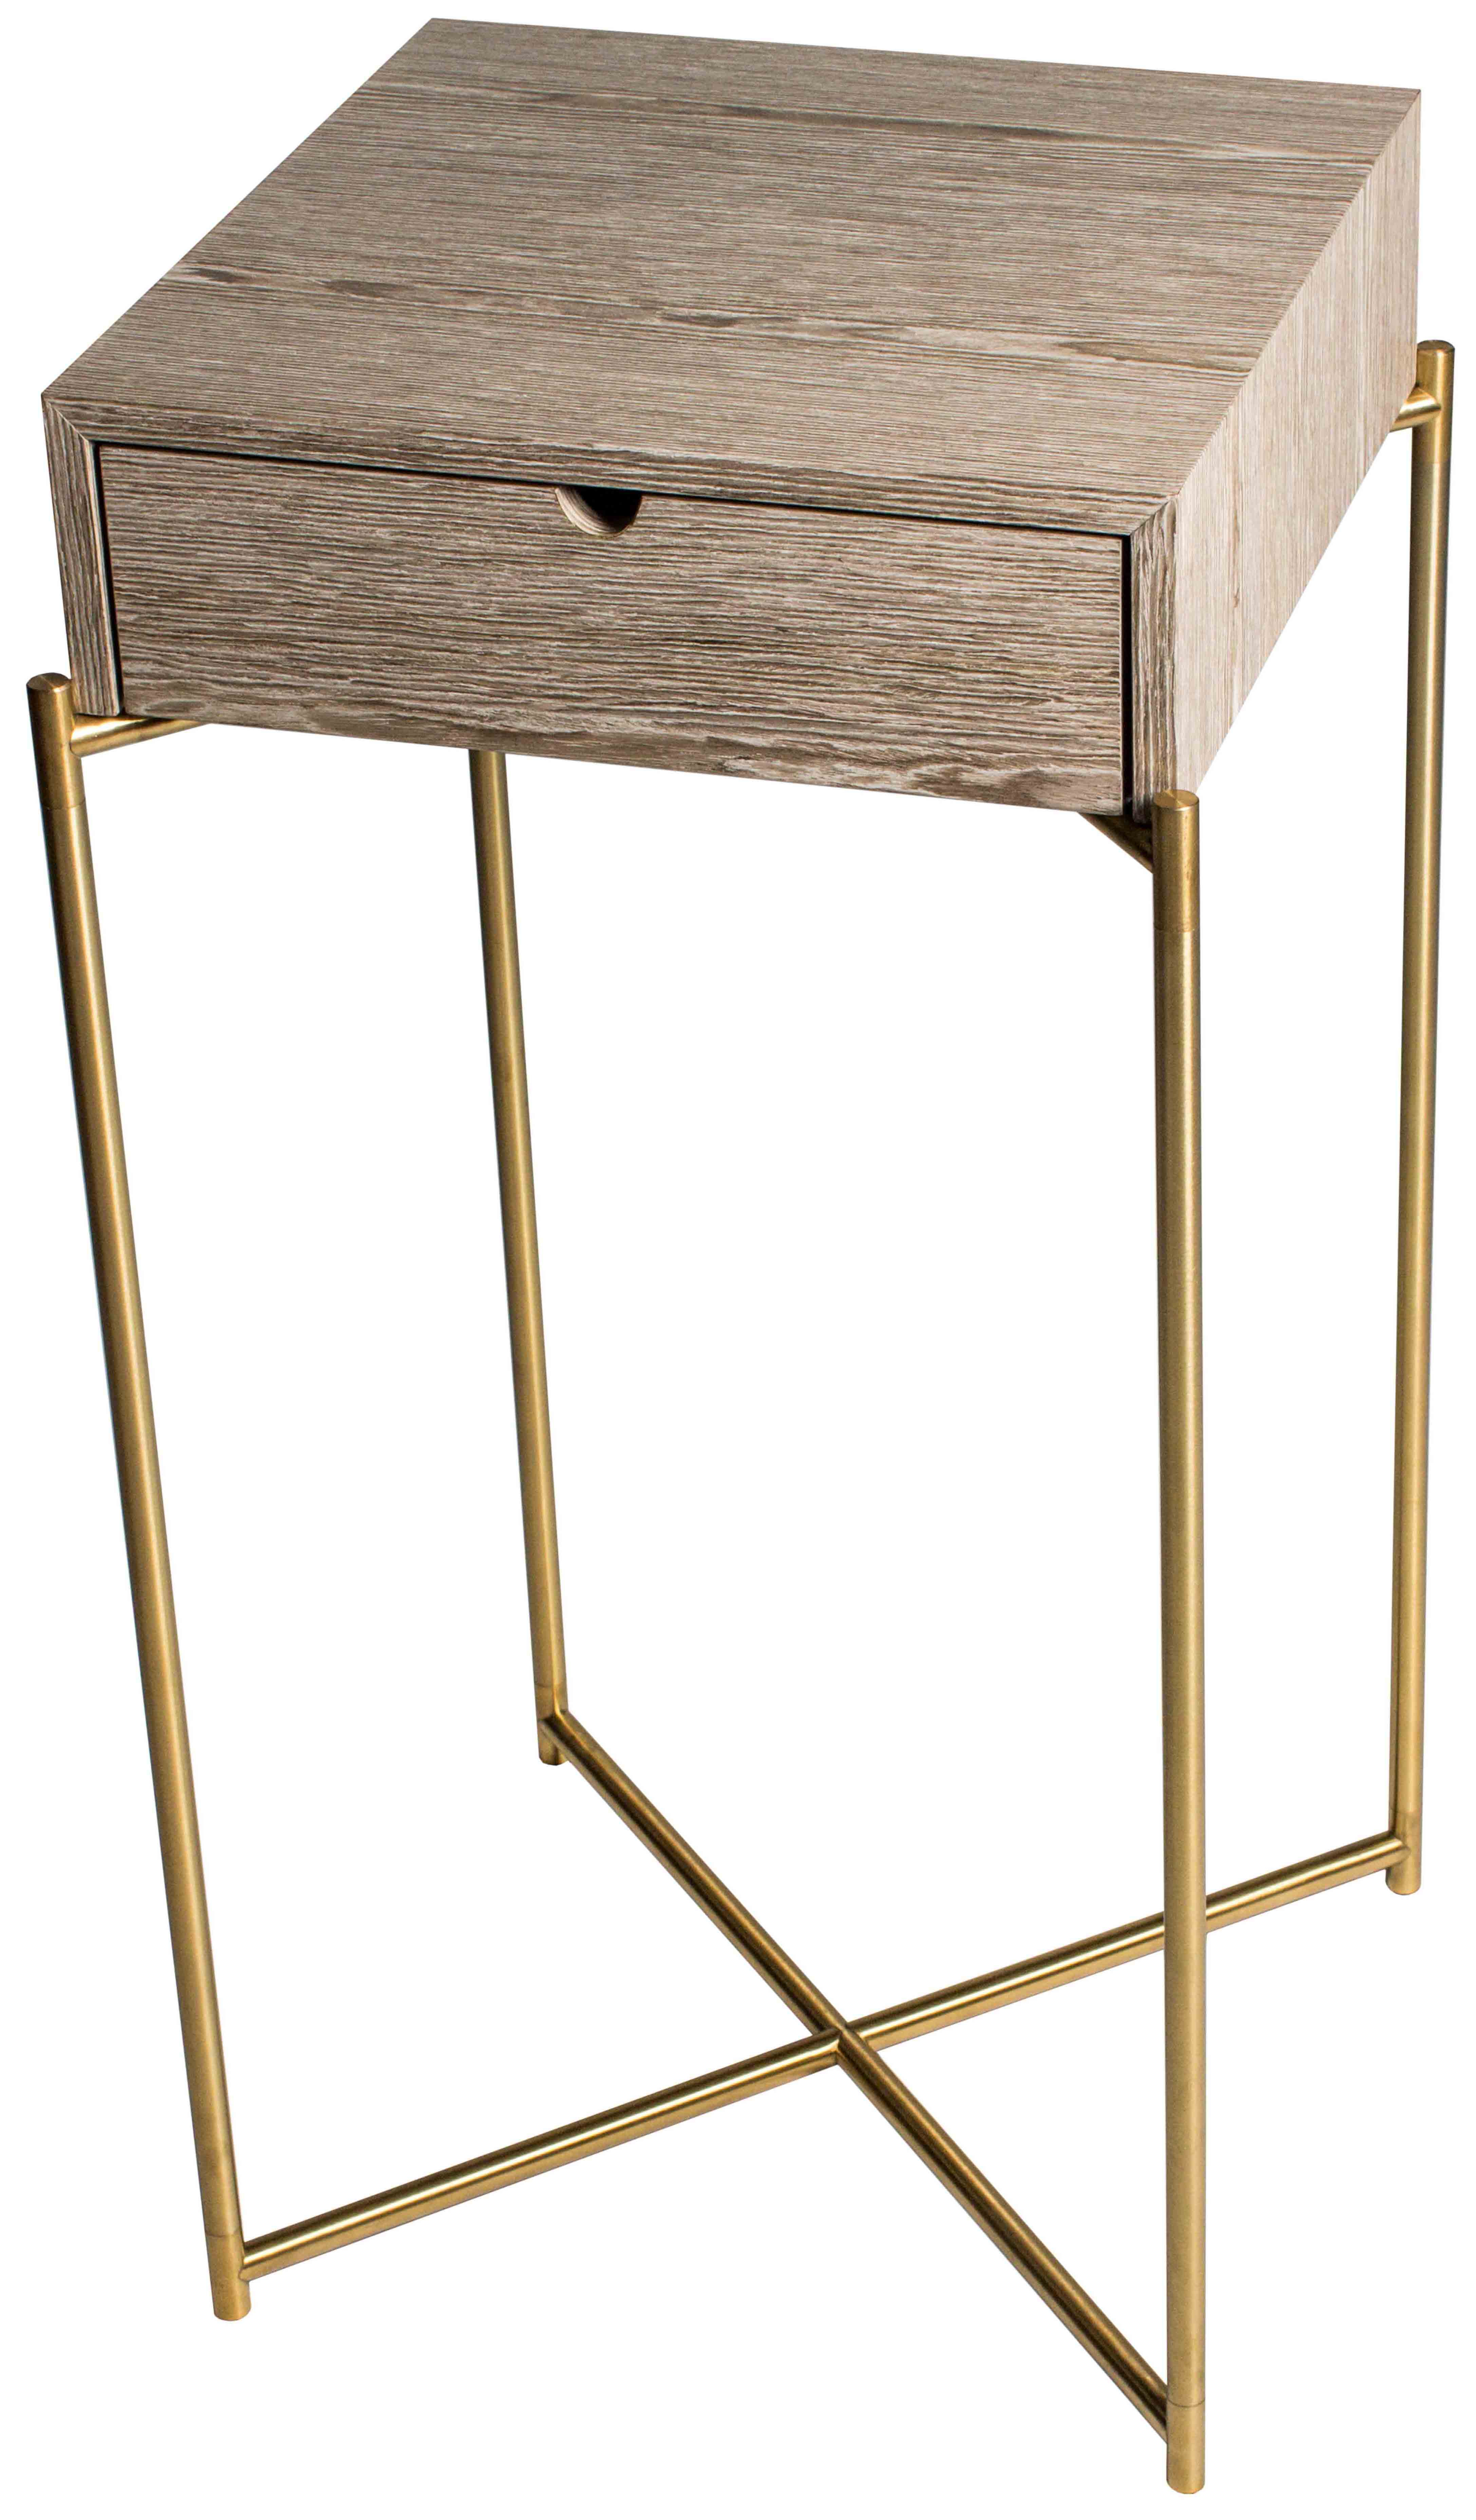 Iris Square Plant Stand Weathered Oak Drawer Top With Brass Frame intended for Oak & Brass Stacking Media Console Tables (Image 16 of 30)